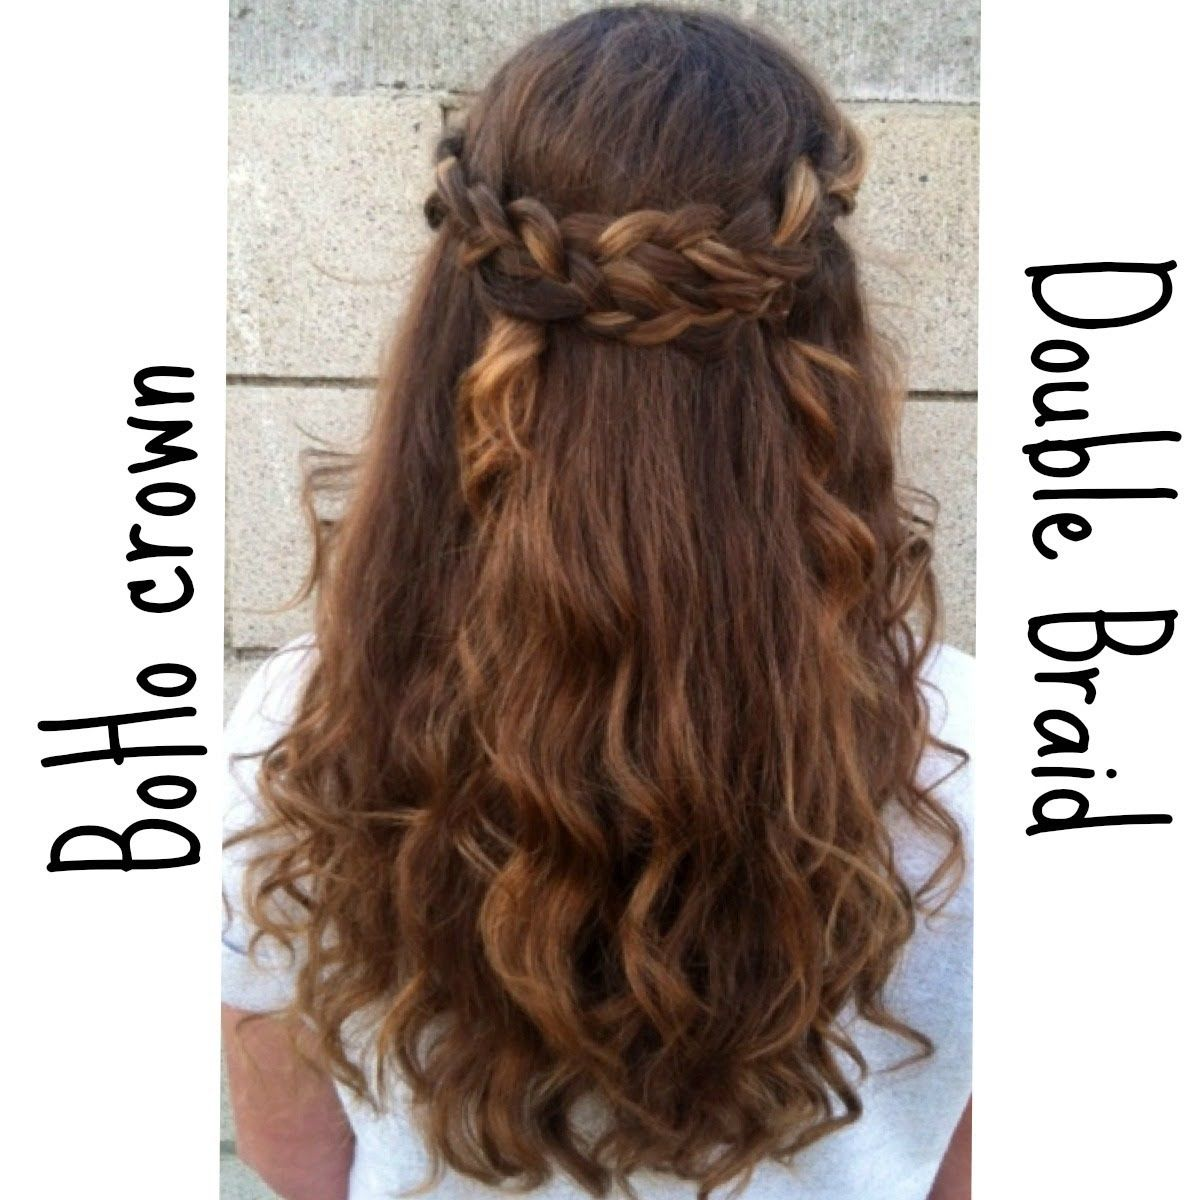 Braided half up half down hairstyle | Hair & Make Up ...